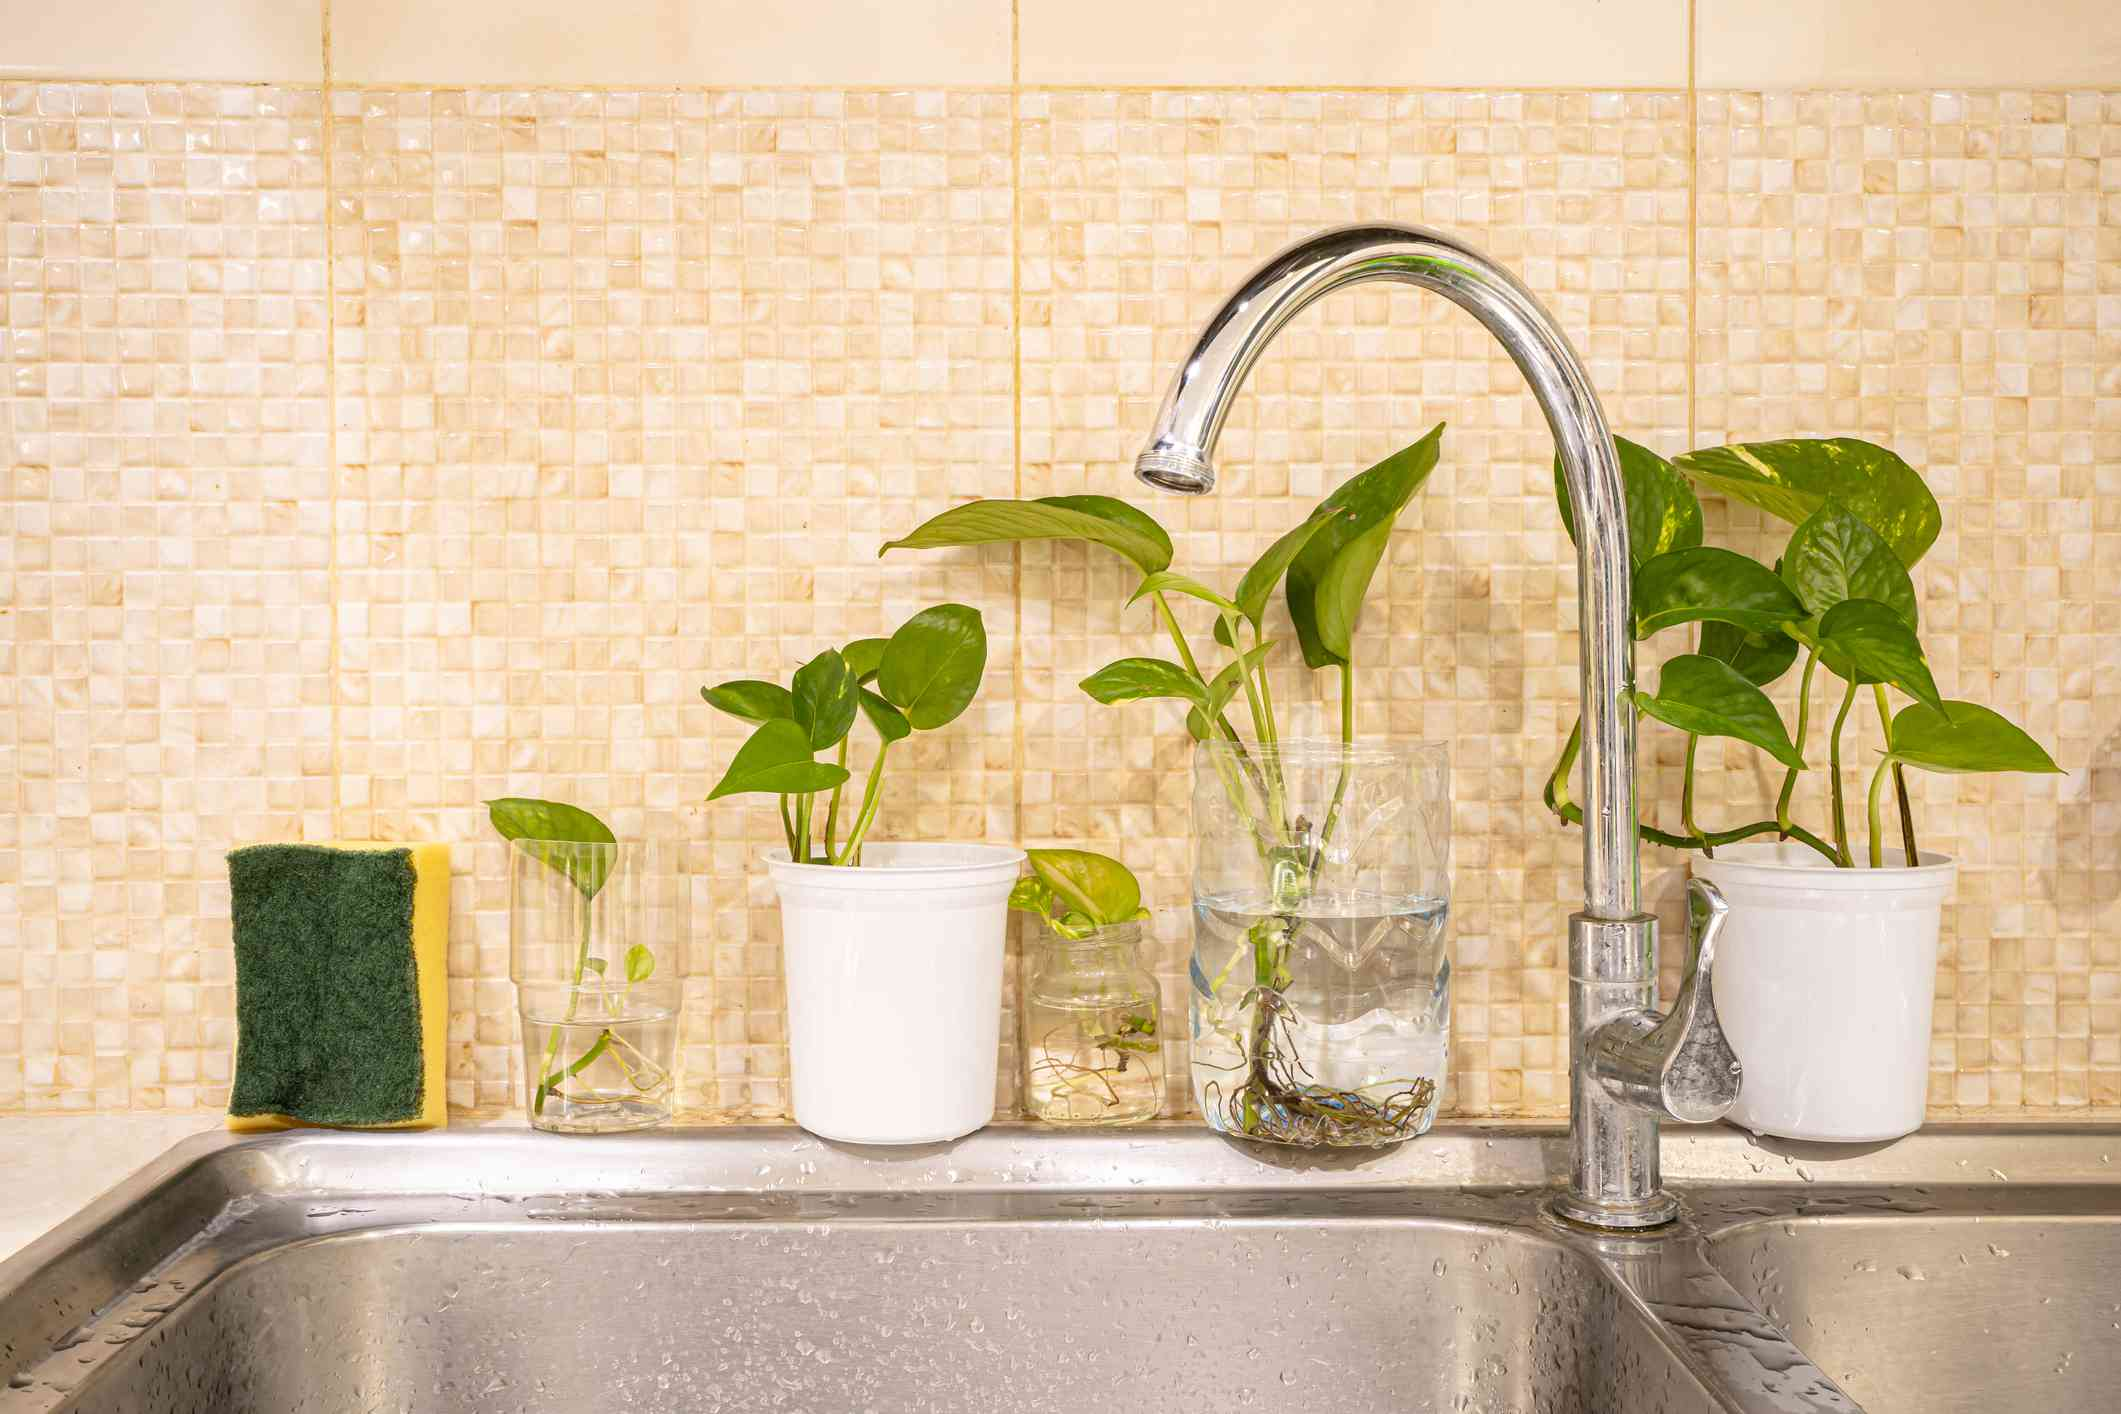 Kitchen sink decorated with plants